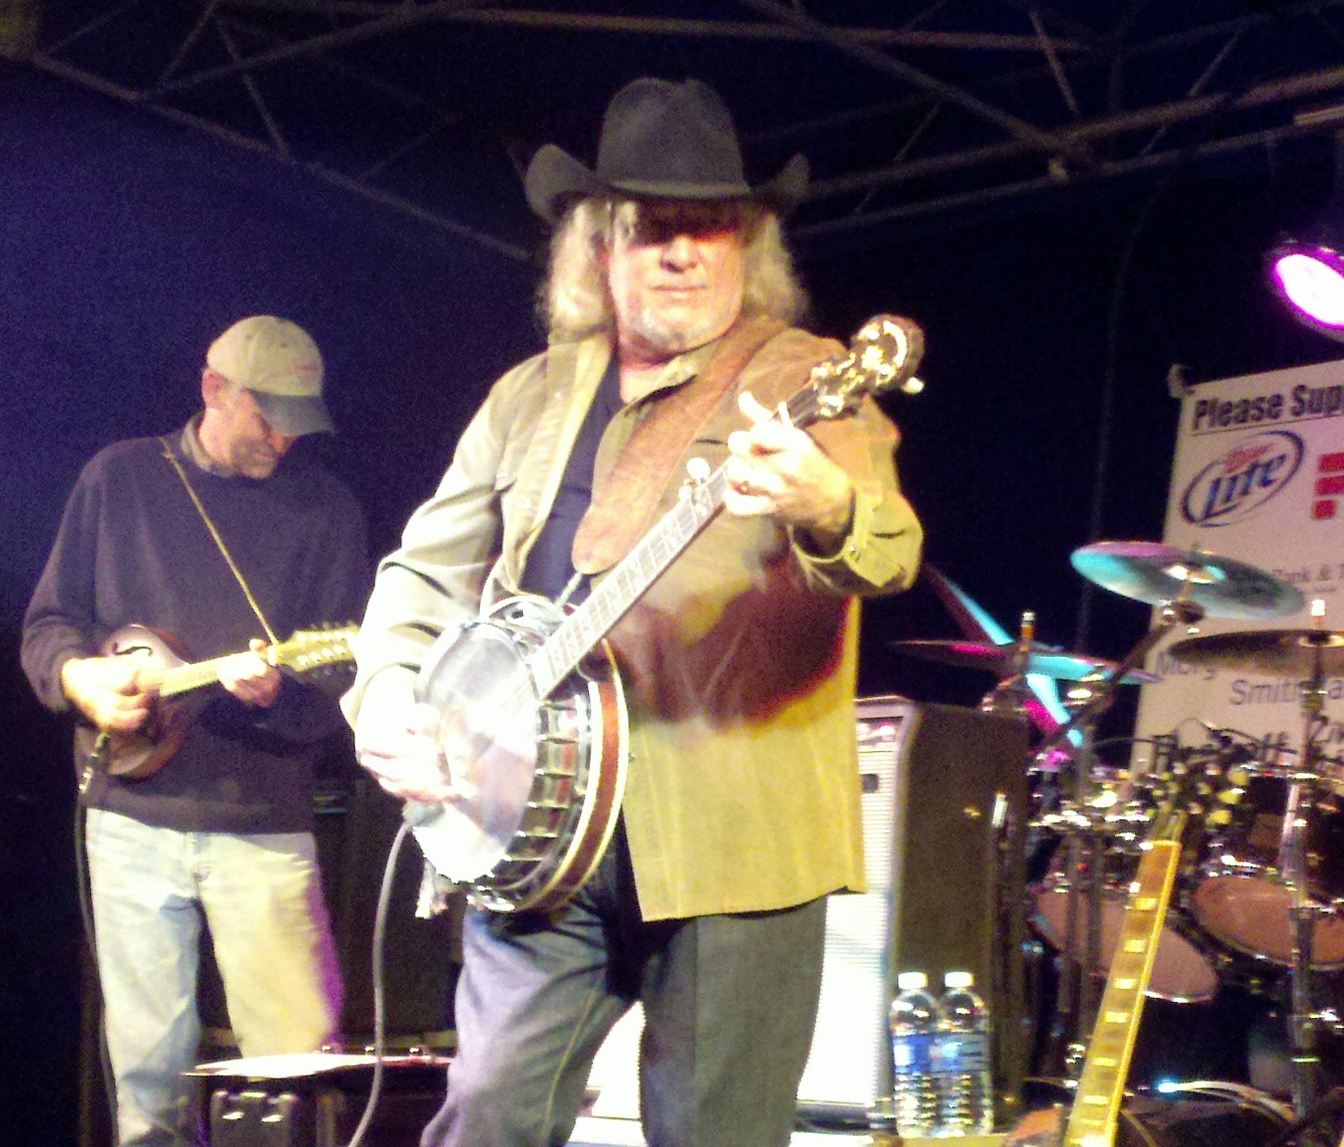 Country legend John Anderson performs on Friday, Oct. 26, at the Turn 5 Concert Series near Martinsville Speedway.